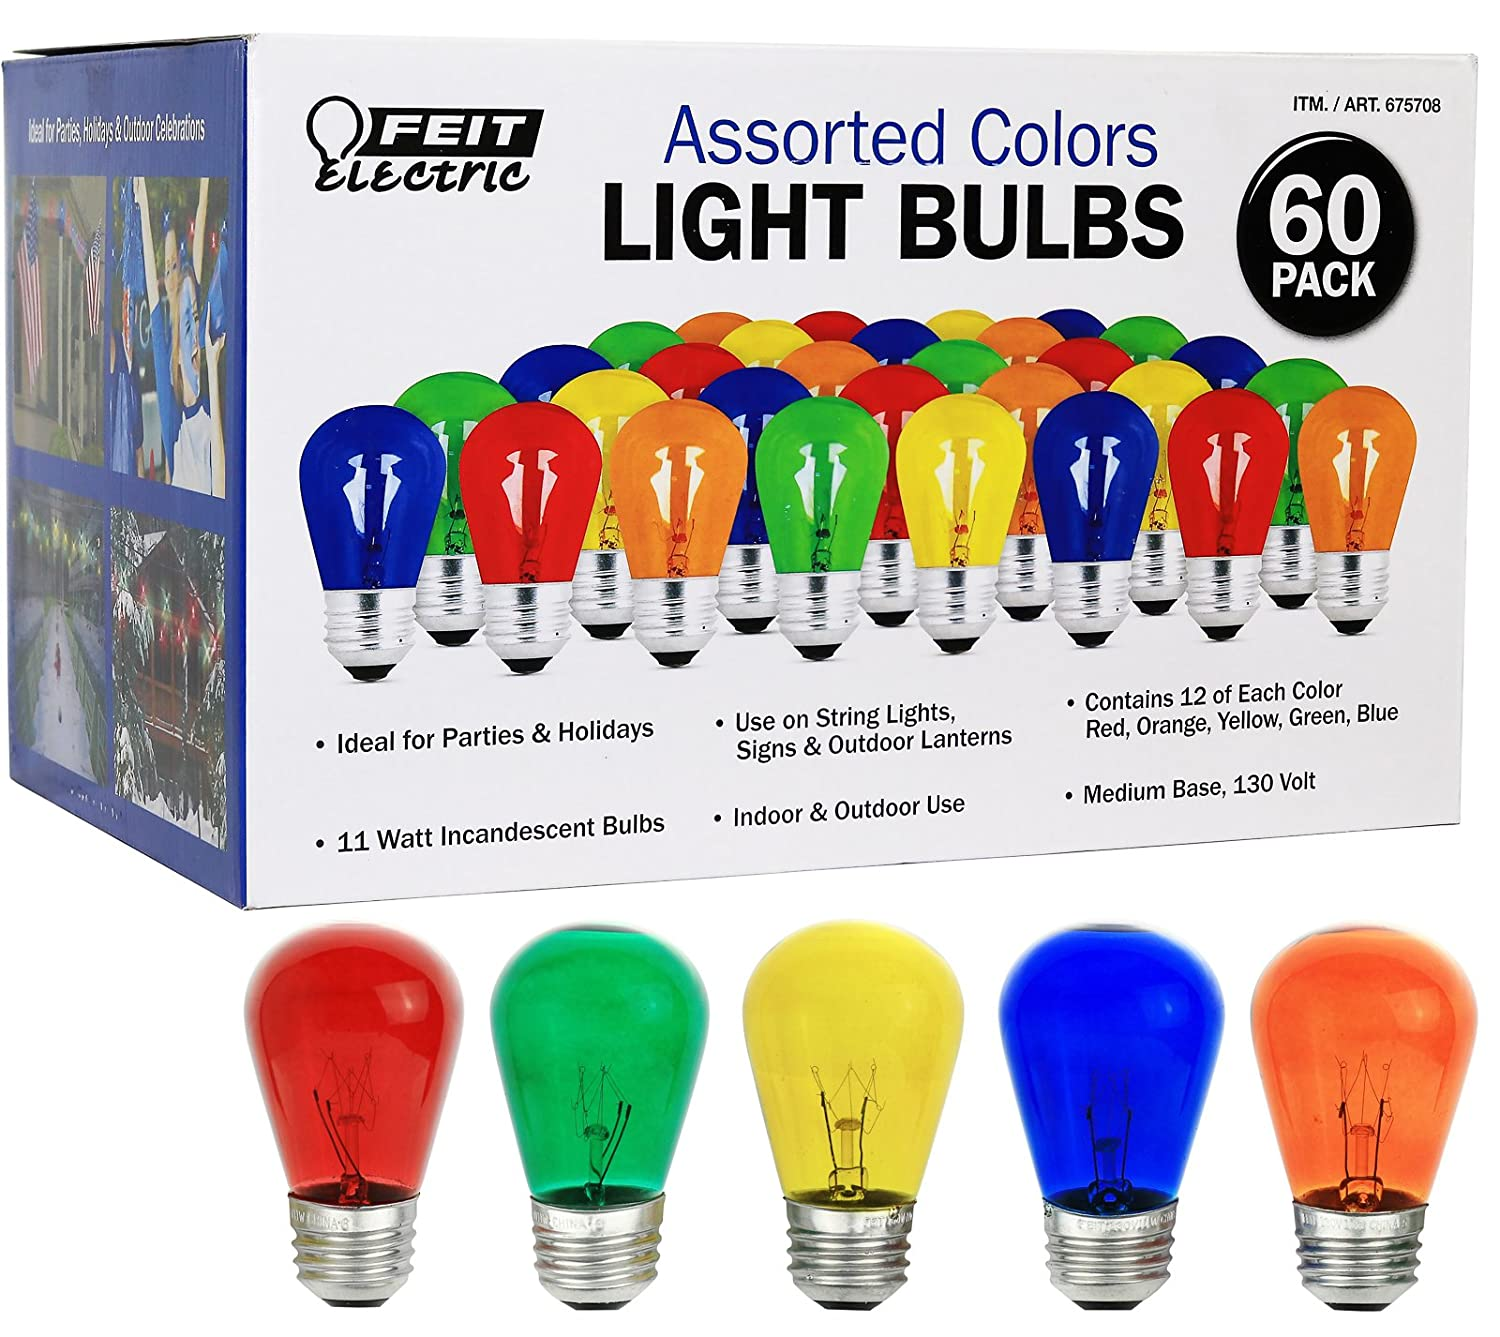 High Quality Feit Electric COMINHKPR92889 Feit Electric Colors Light Bulbs (60 Pack),  Assorted     Amazon.com